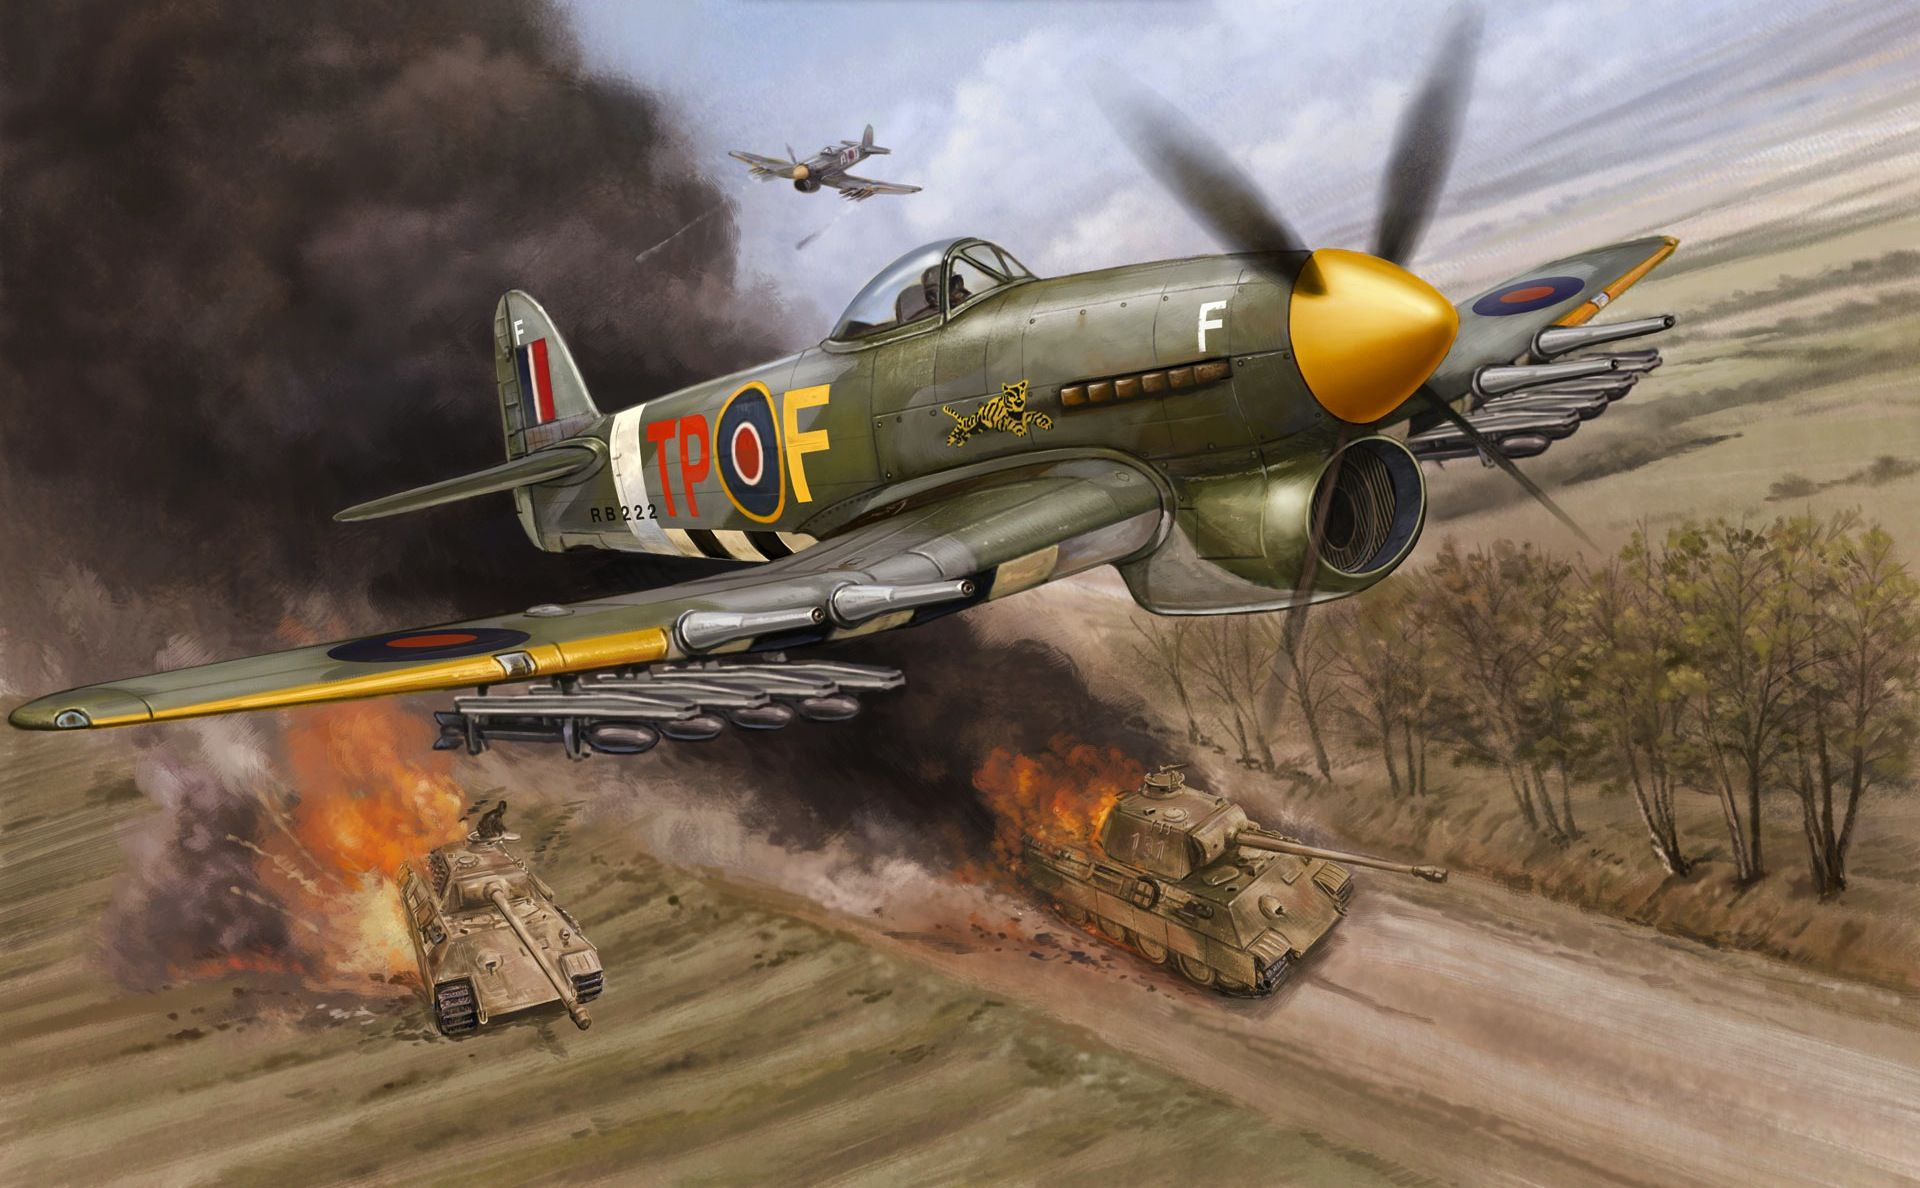 wwii aviation artwork – gallery 1 : atomic toasters | military art